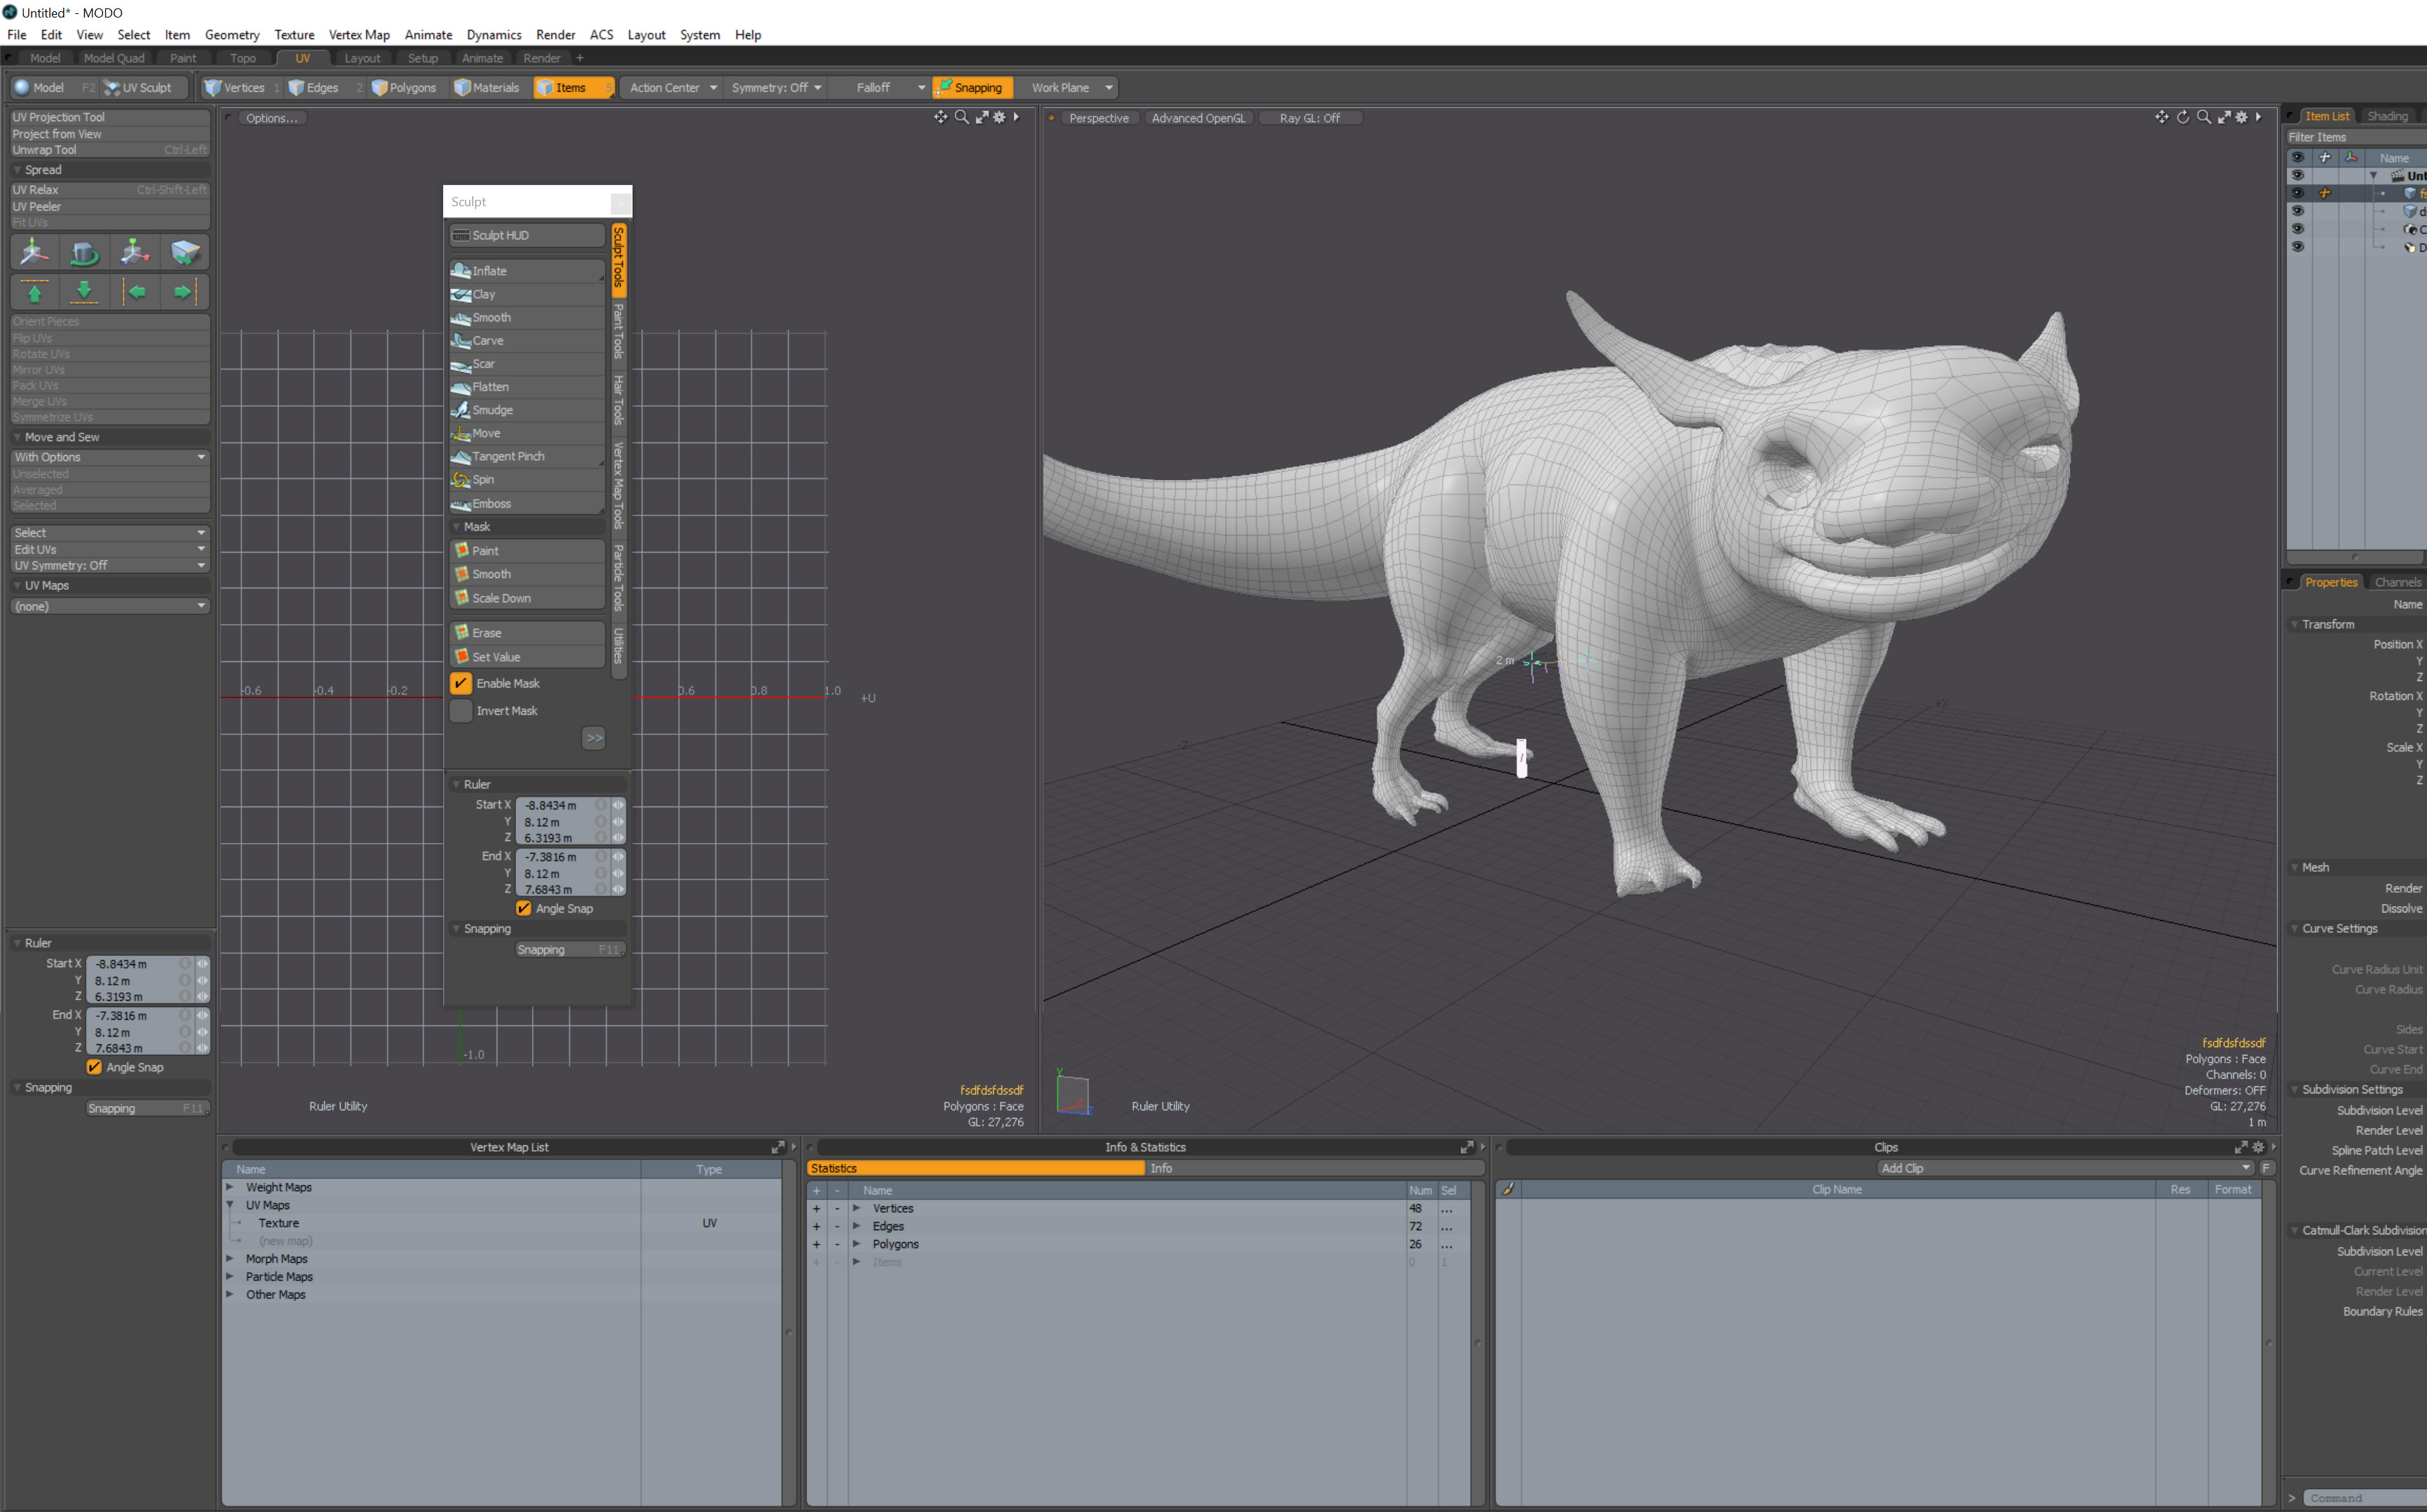 Dealing with OBJ scale between different applications (Modo, Maya